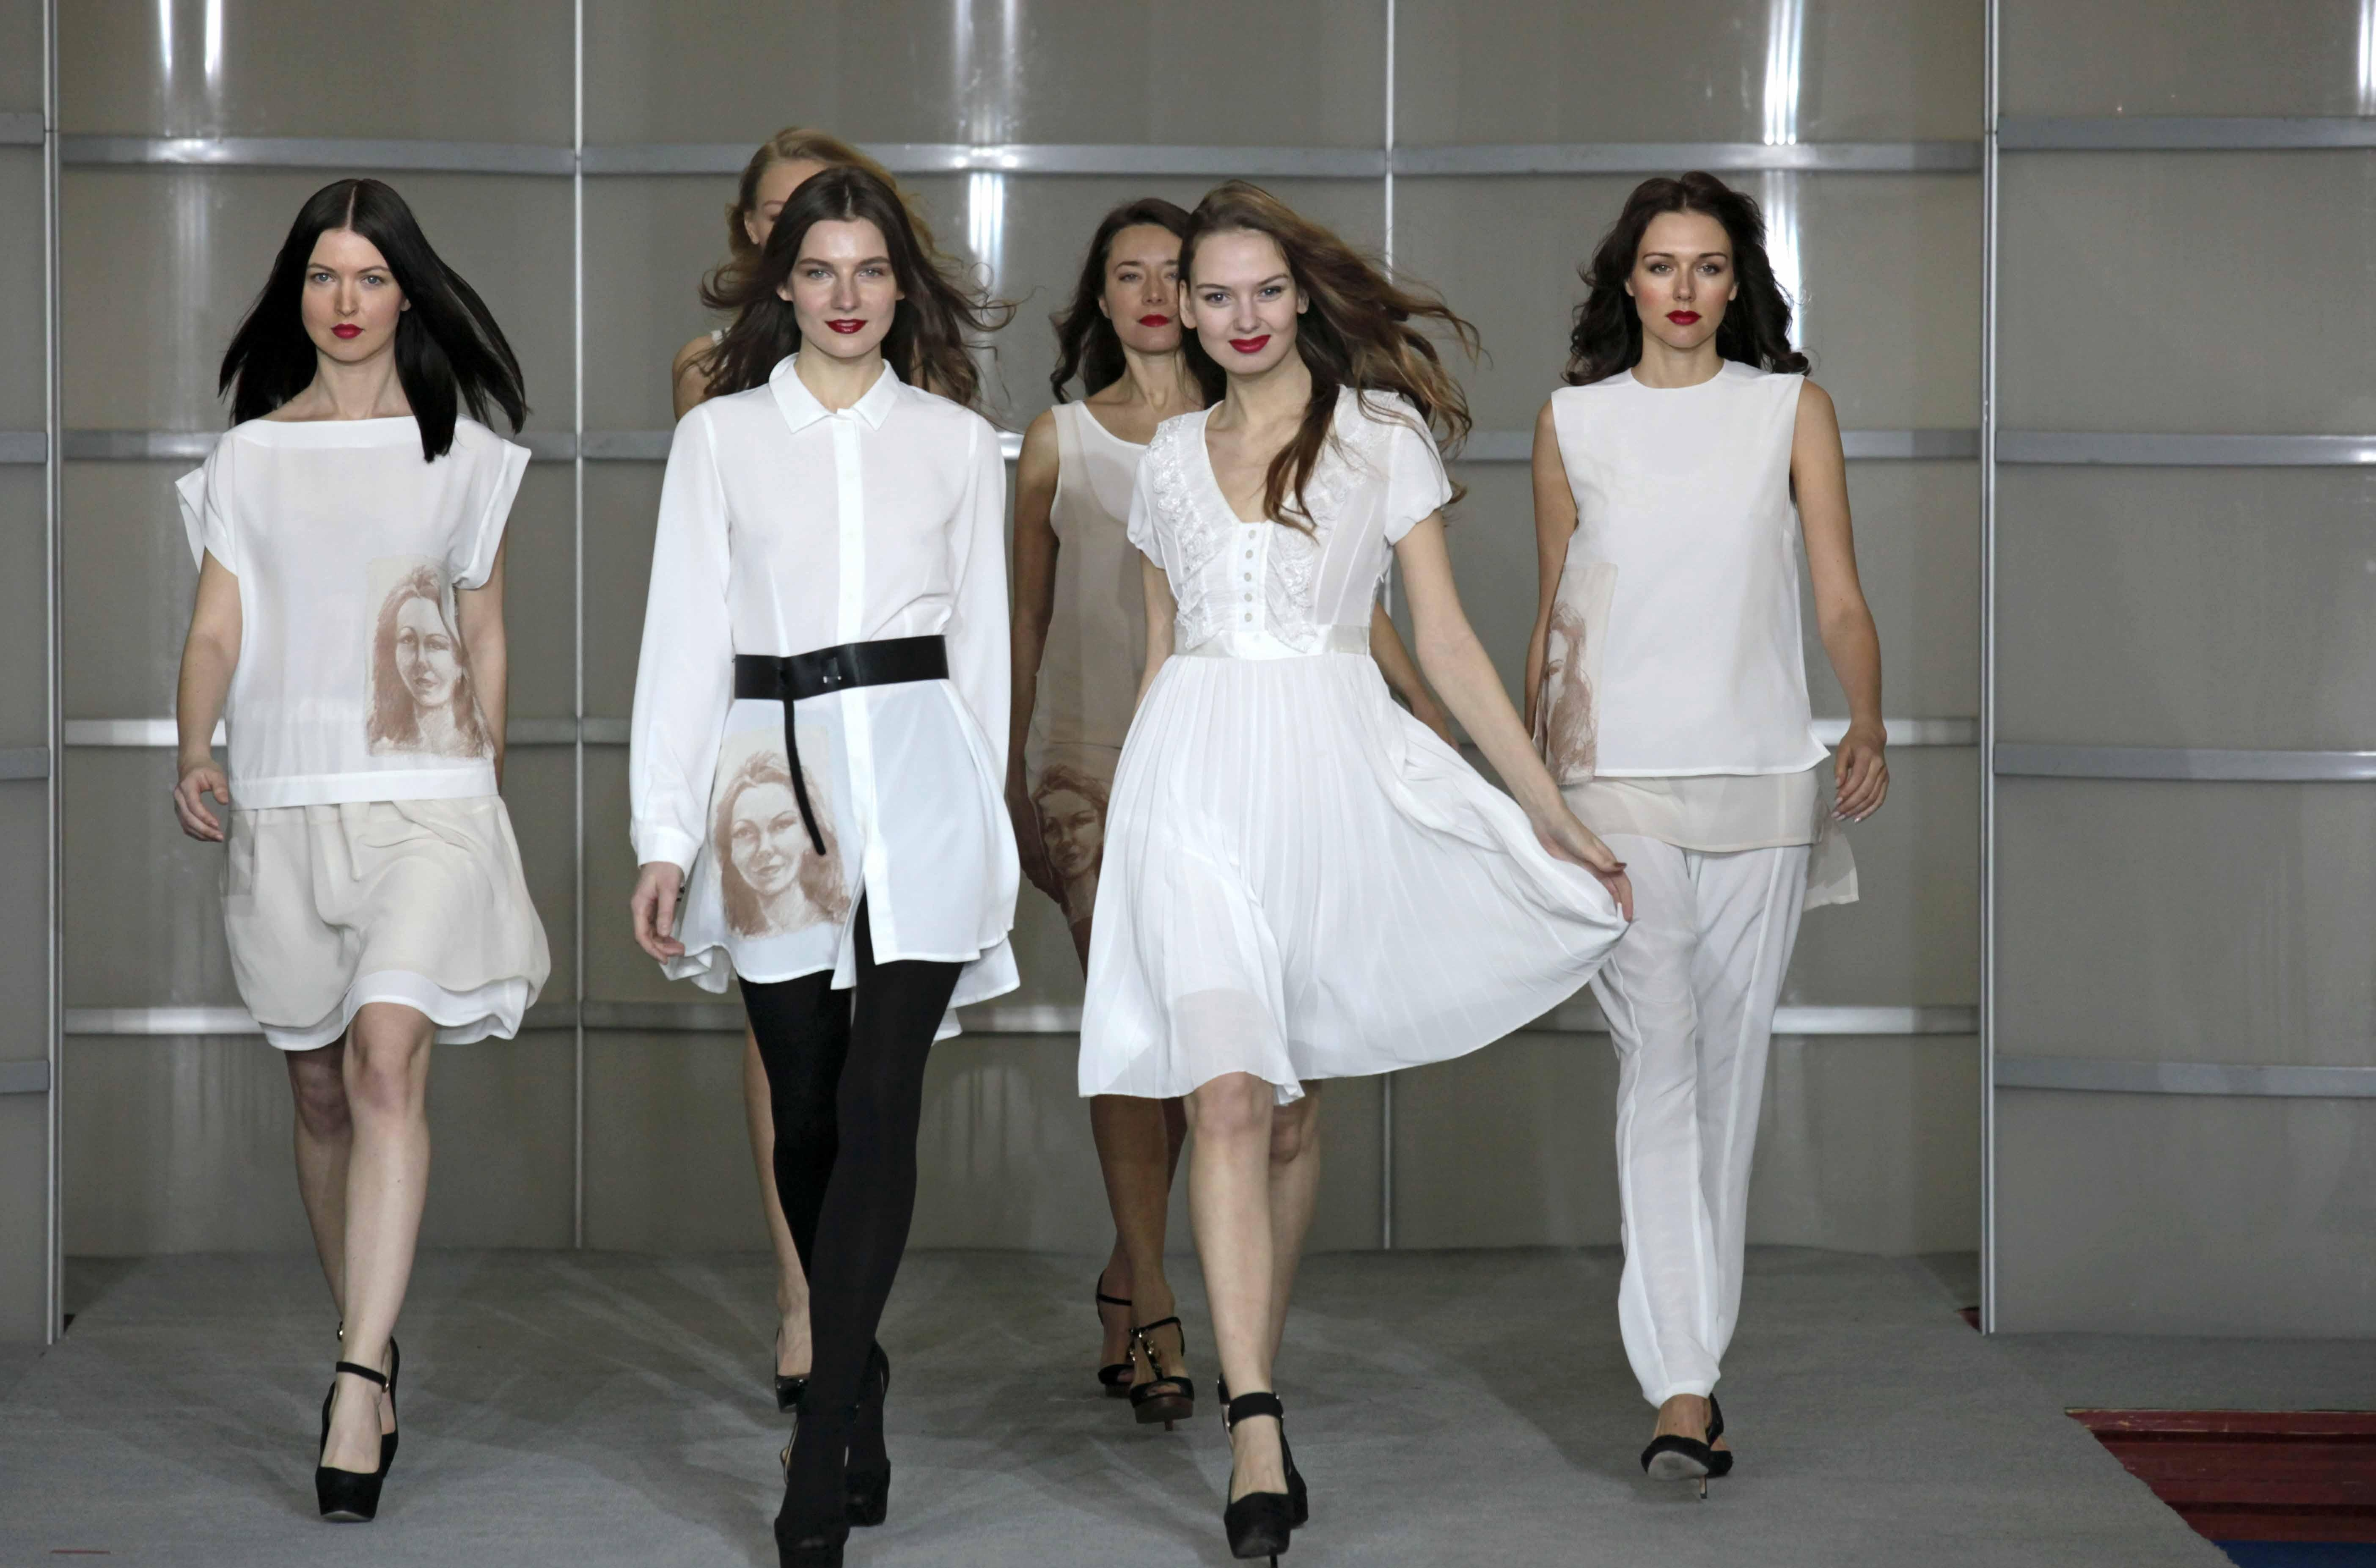 the best way for the fashion industry to market diversity The fashion industry affects society both positively and negatively, especially negatively, in ways like eating disorders, providing sizes for plus-size consumers, and representation of plus-size models and ethnically diverse models.